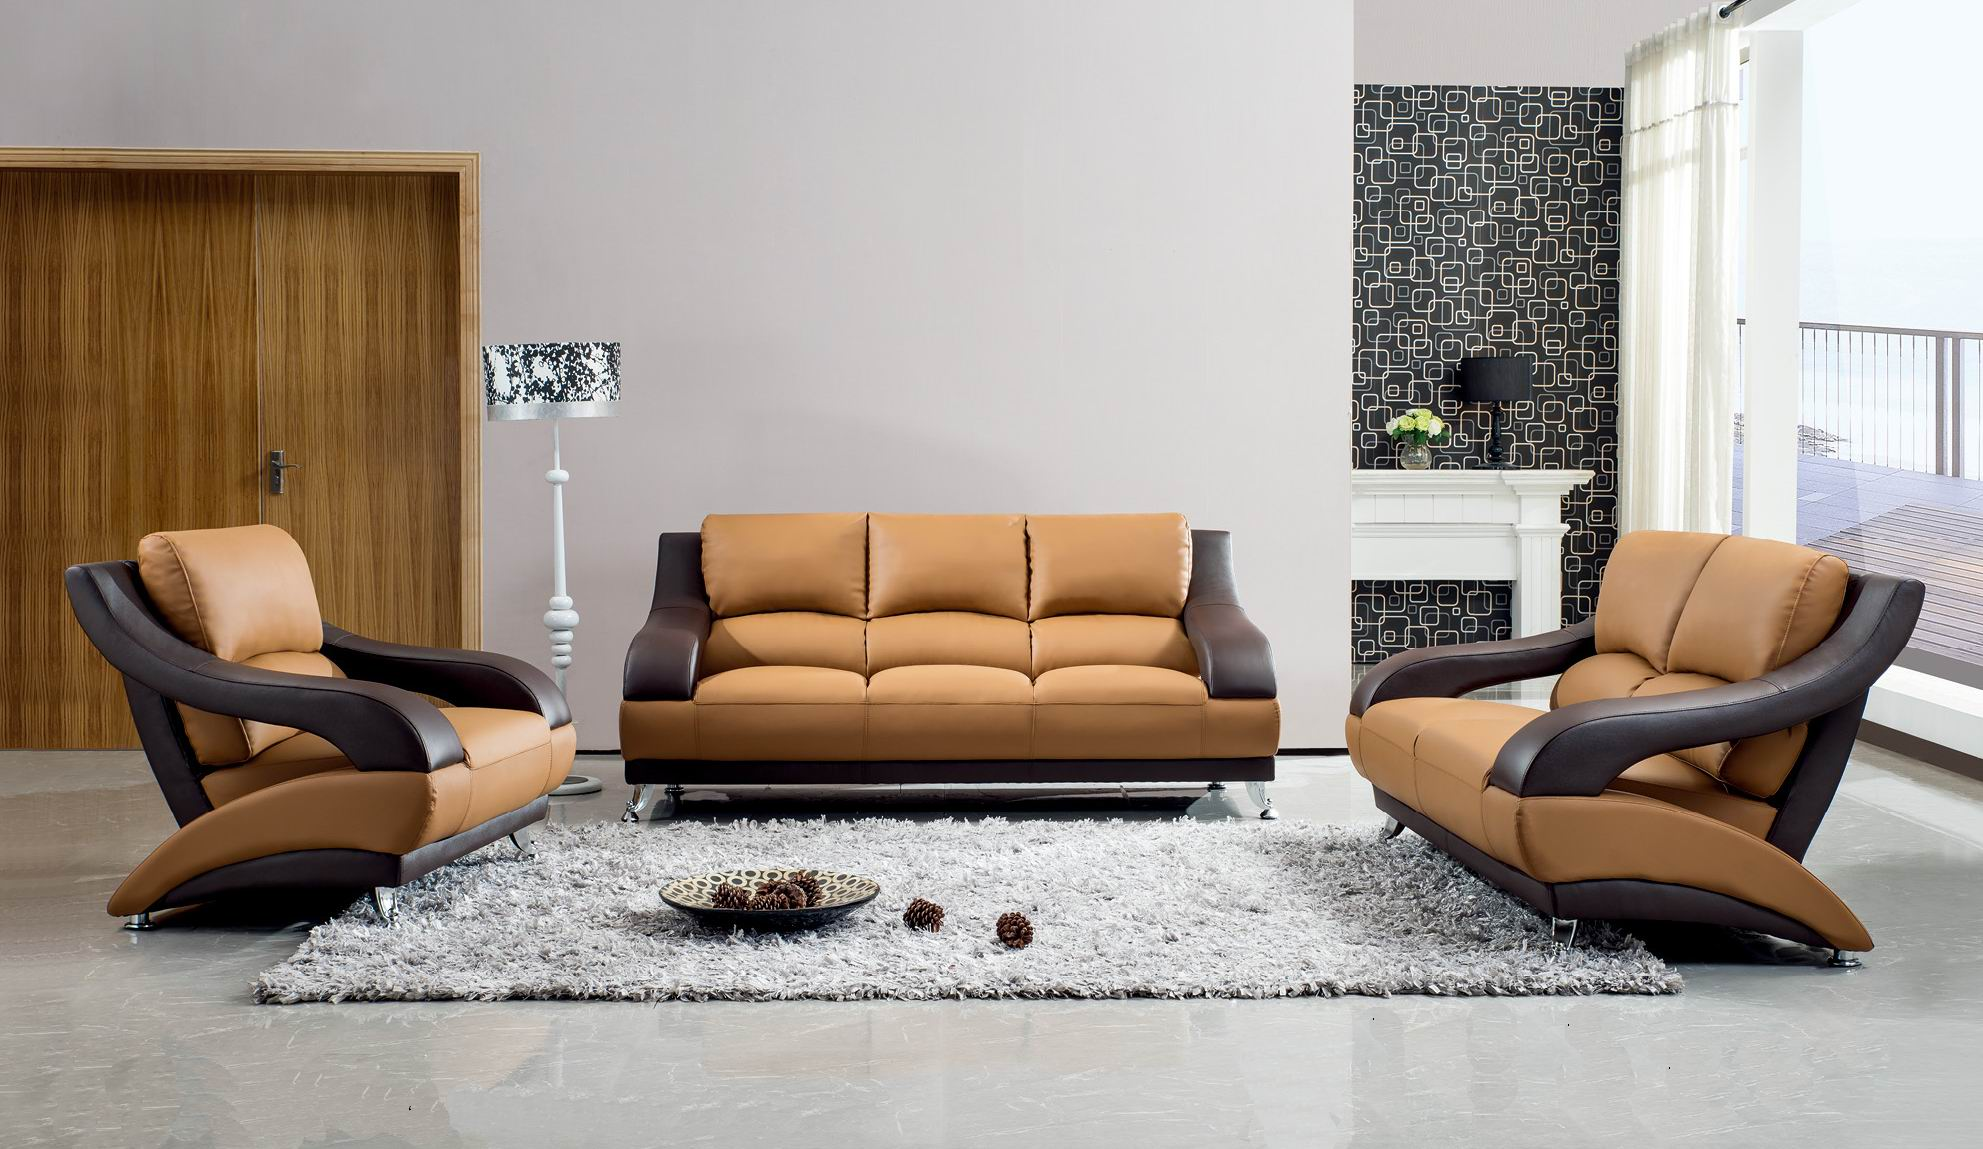 Brown Leather Contemporary Living Room Set with Metal Legs